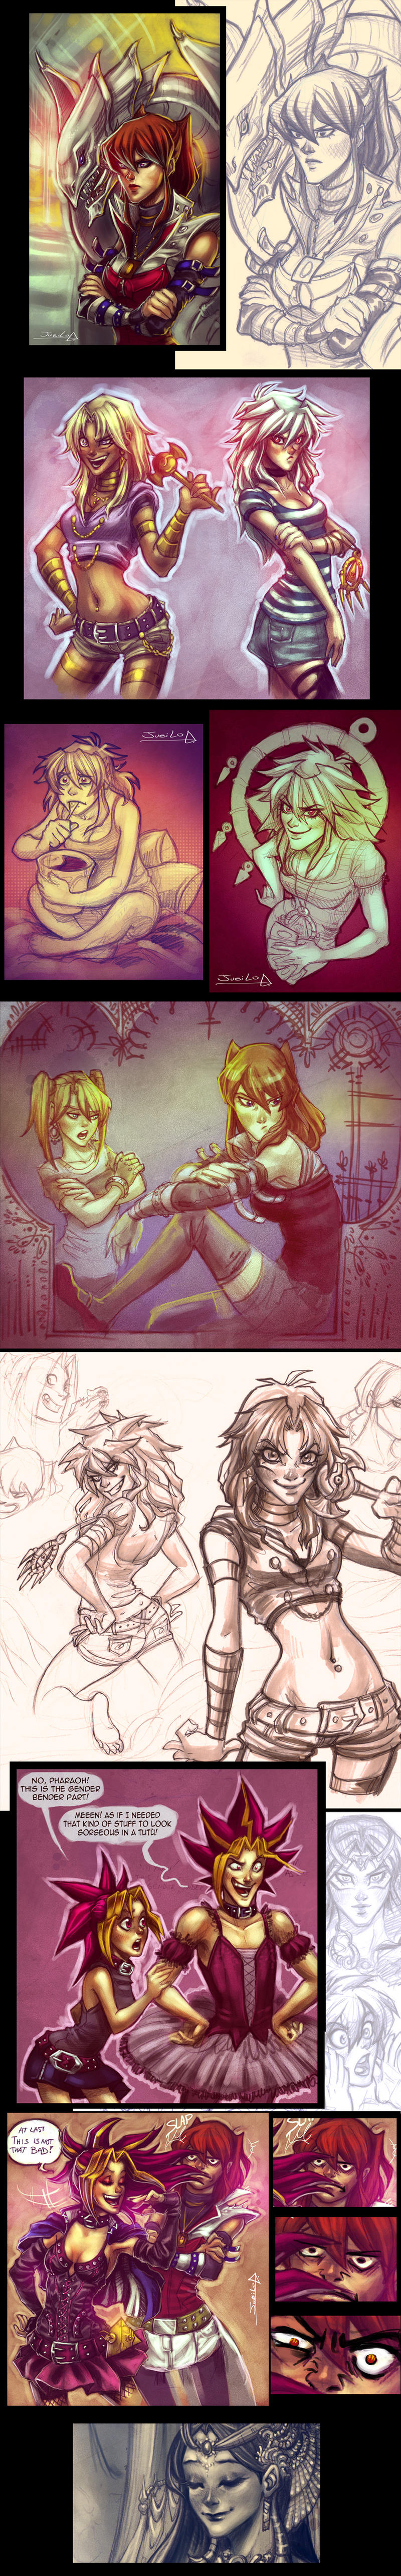 Yu gi oh - Gender Bender by Rivan145th